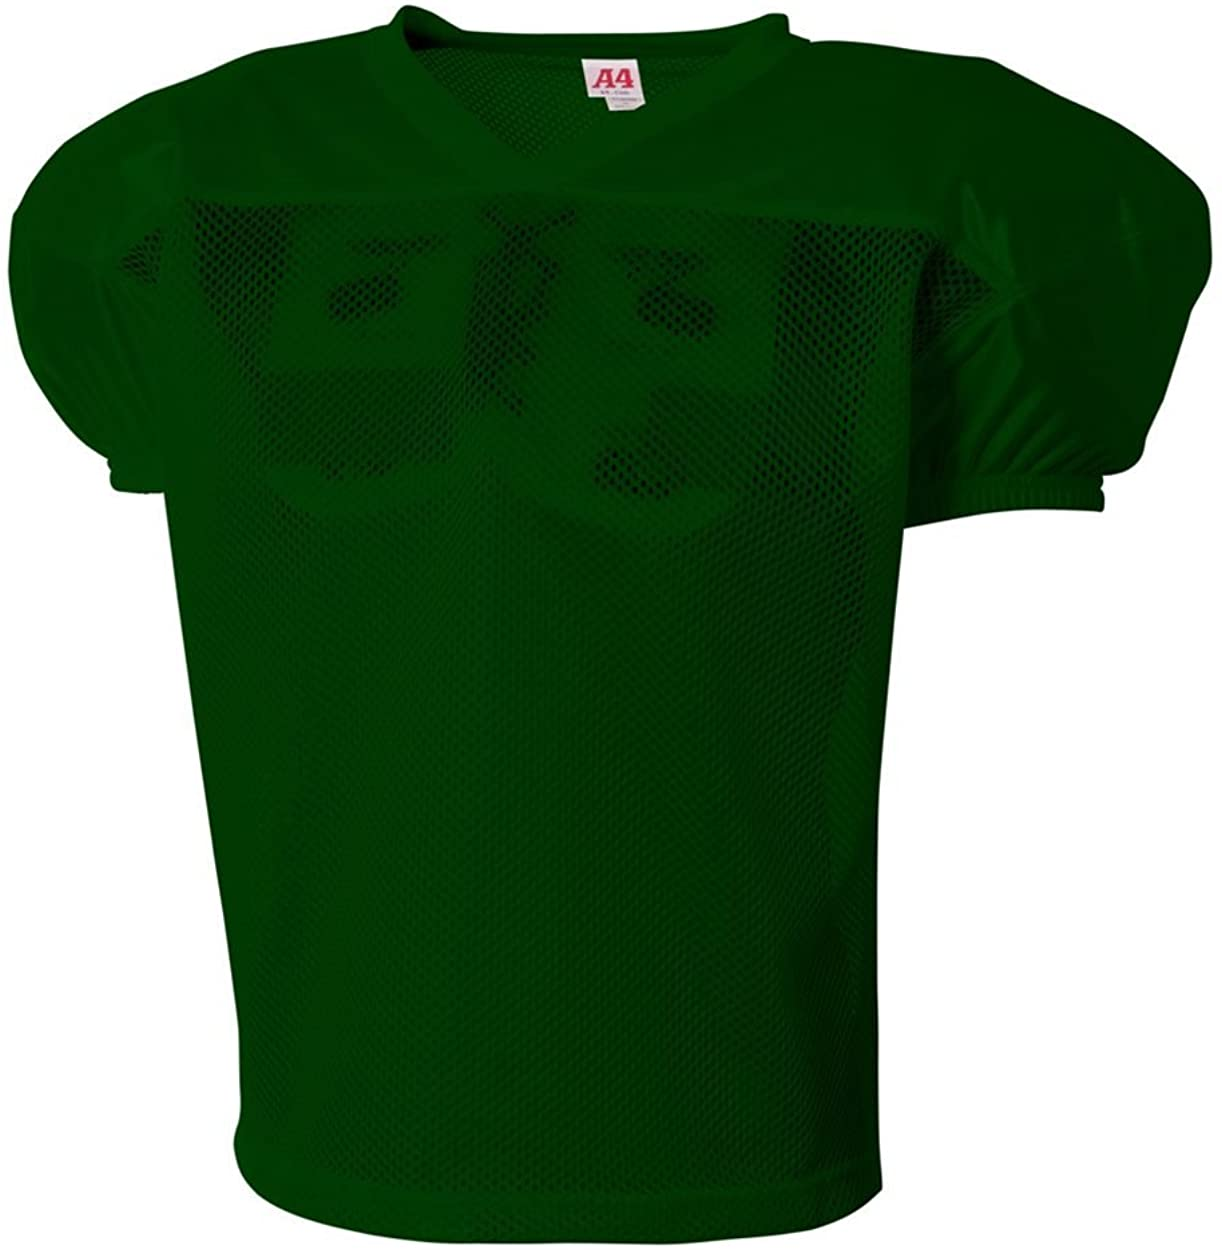 A4 Sportswear Hunter Green Adult Medium Football Drills Practice Jersey